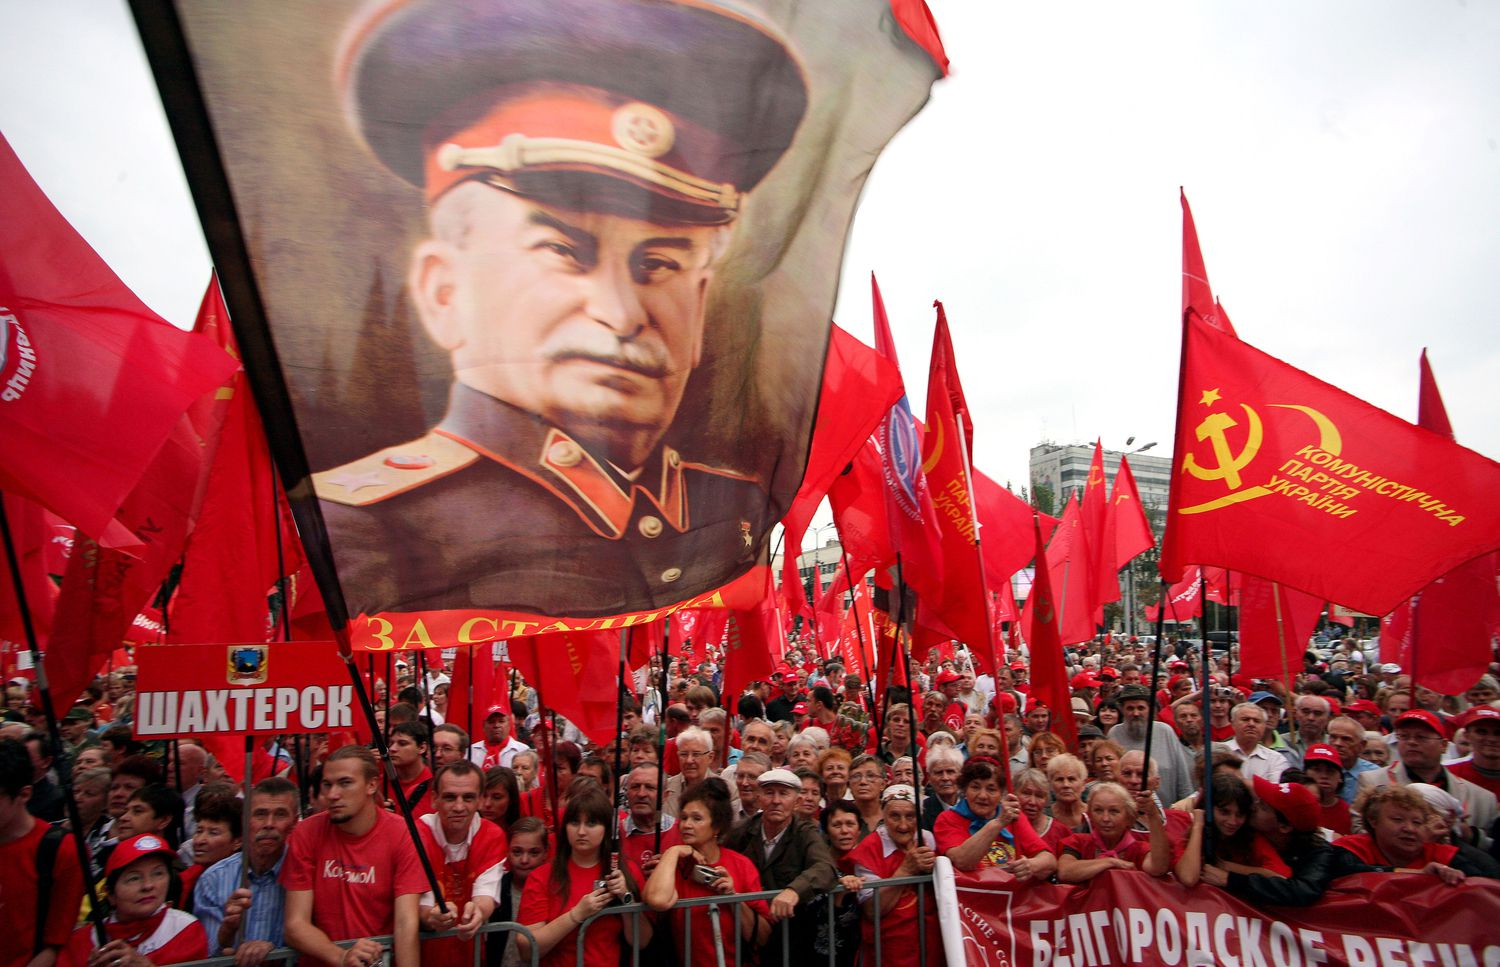 communism in the soviet union and why it failed Why communism failed by bettina bien greaves editors' note: this article, written for fee's op-ed program, has been carried by newspapers in alabama, arkansas, california, indiana, missouri, new jersey, new york, pennsylvania, and, in spanish-language translation, in new mexico, new york, mexico, and the dominican republic.